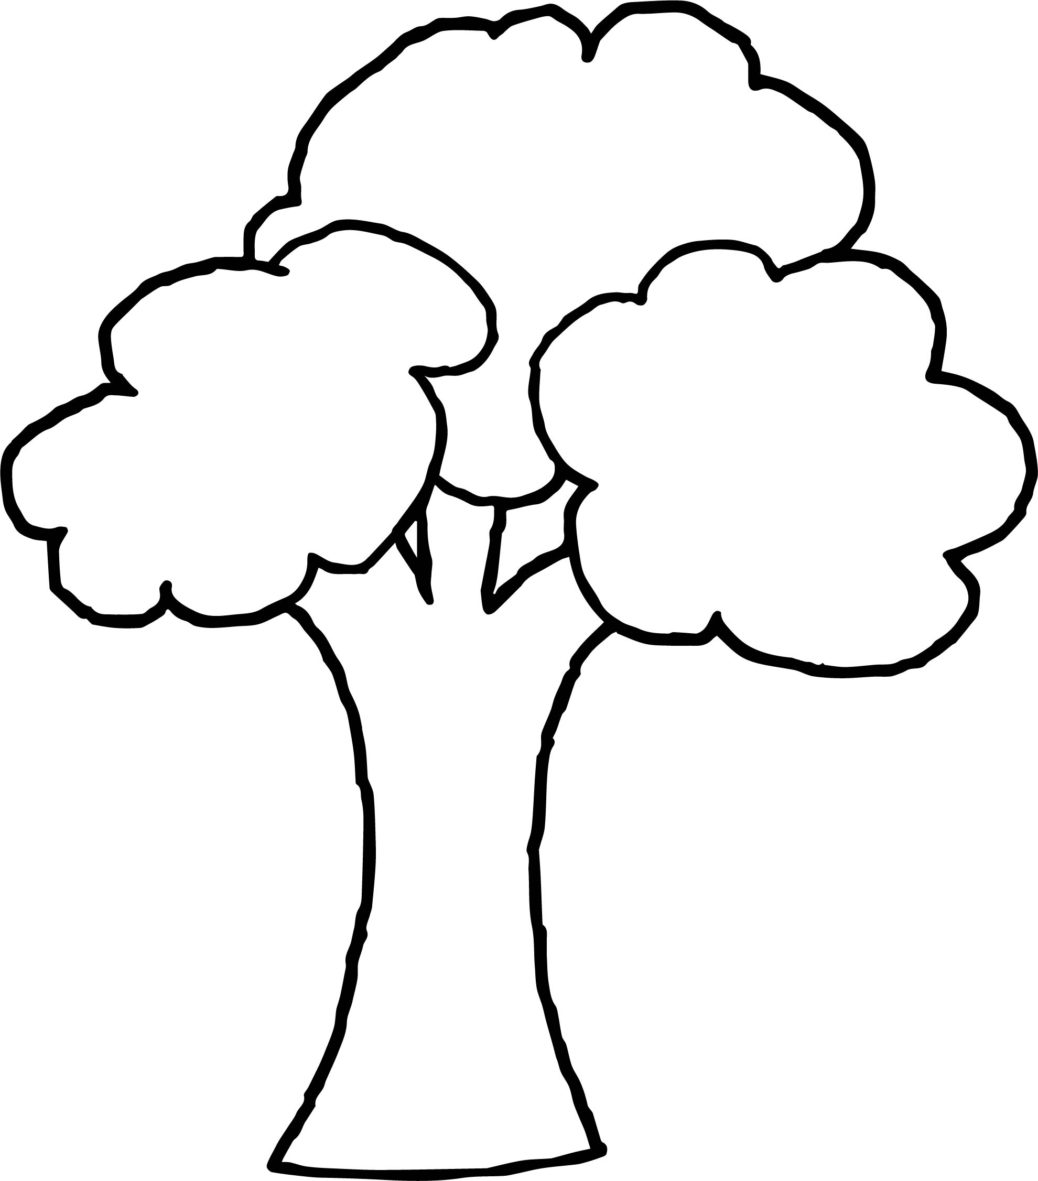 1038x1181 Apple Tree Line Drawing For Personal Use Coloring Book Small